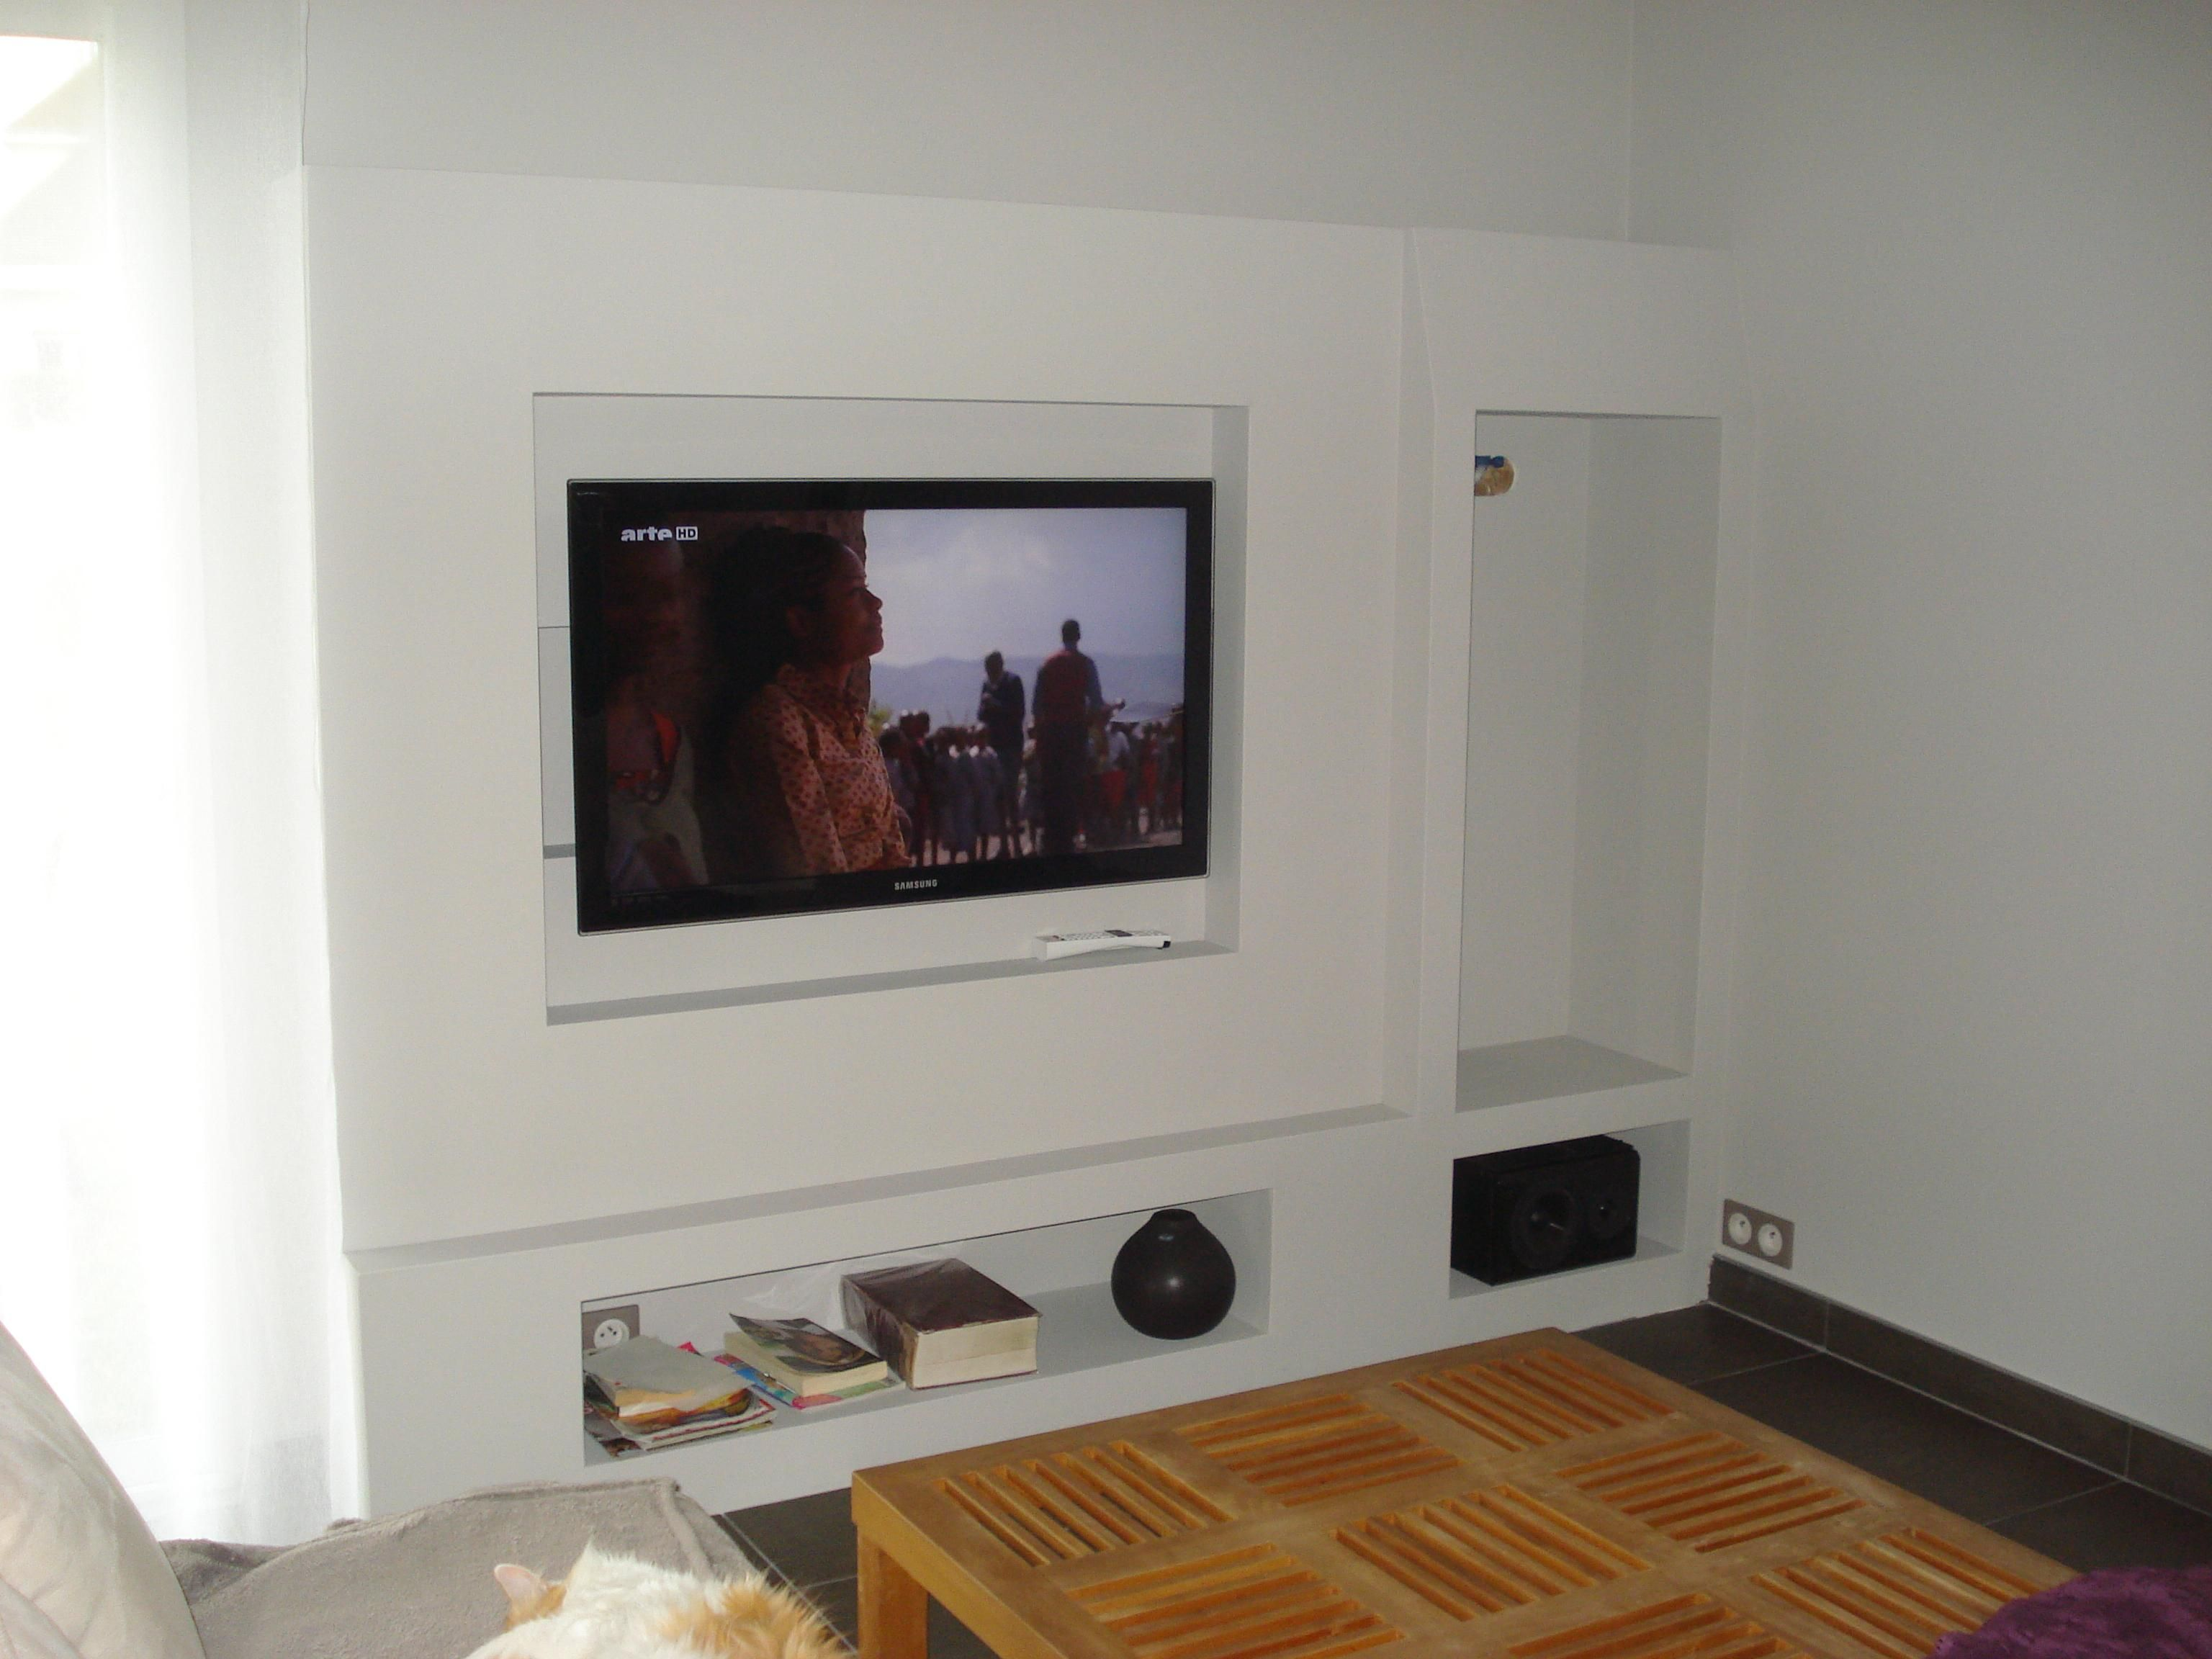 Tv Encastrable Mur Meuble Tv En Placo Placo Pinterest Meuble Tv Tv Et